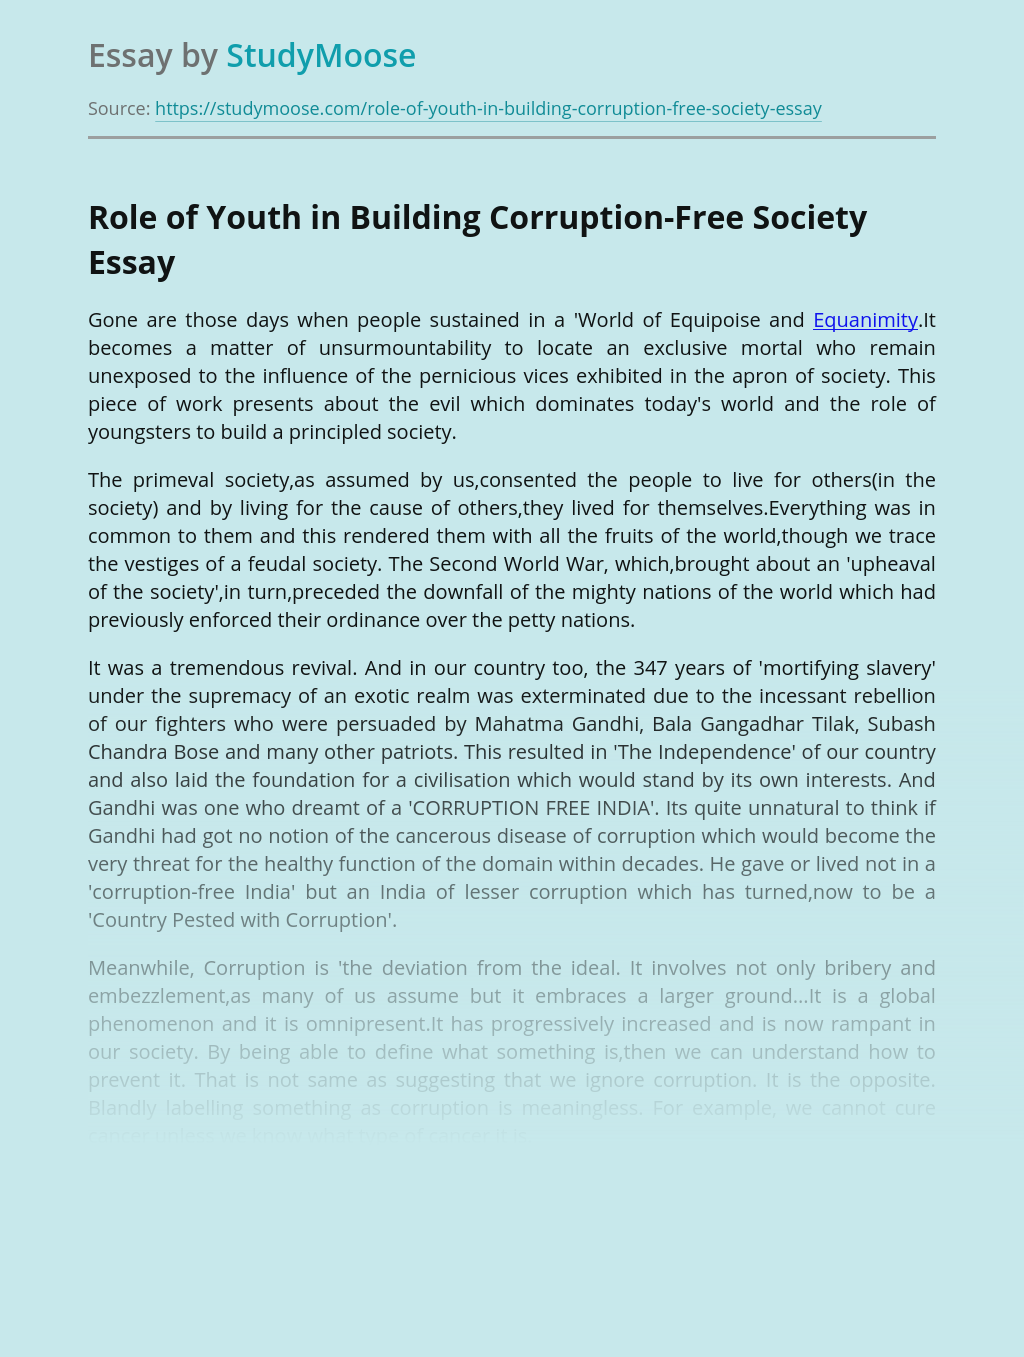 Role of Youth in Building Corruption-Free Society